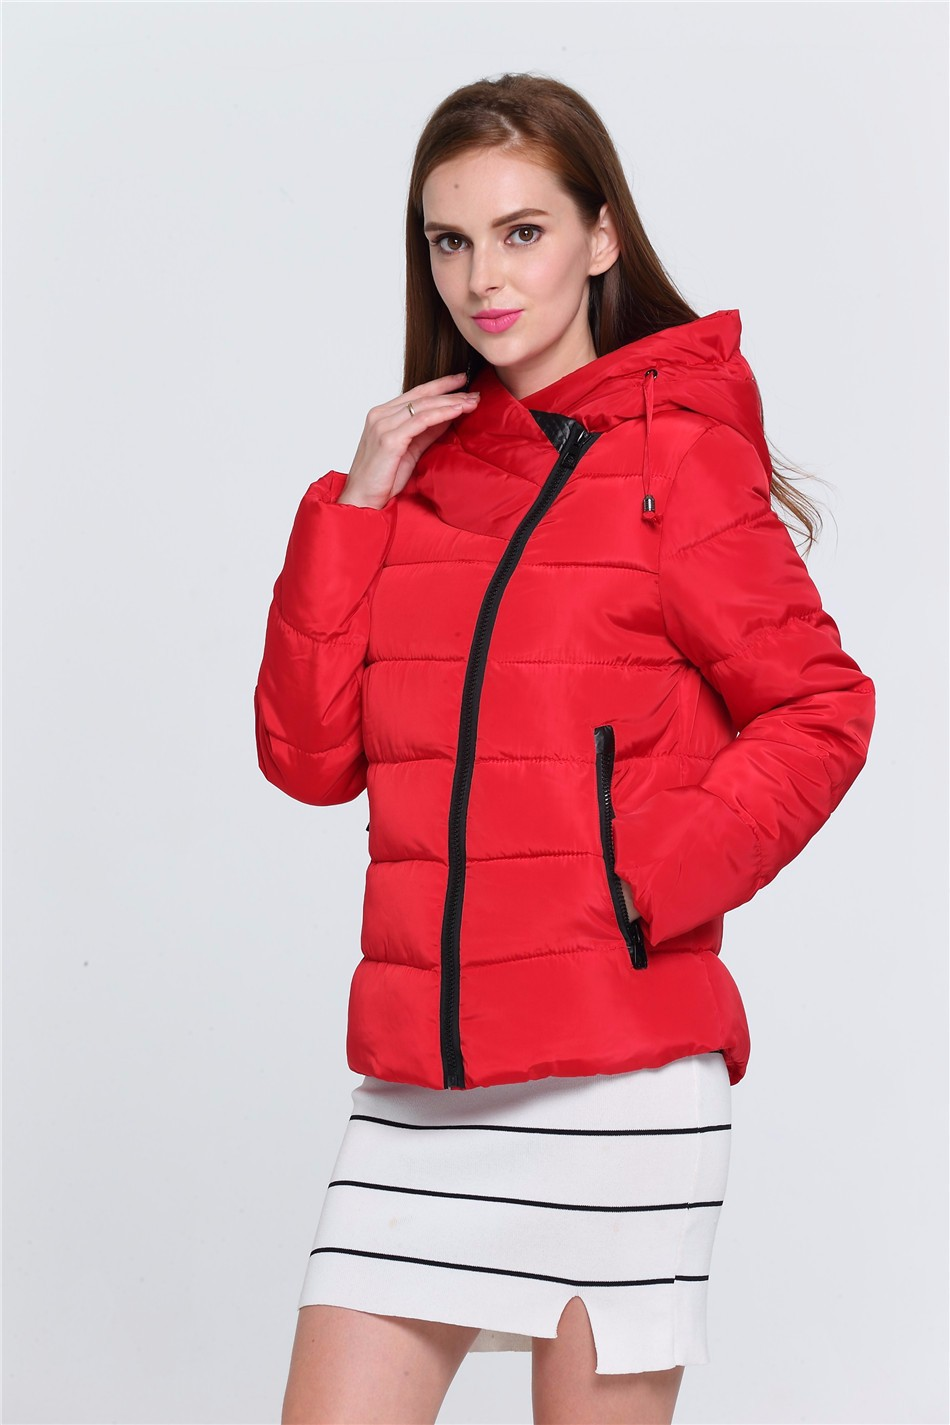 2017 Women Winter Jacket Warm Casual Hoodies Solid Women Down Jacket For Female Red Color Size M-3XL Womens Winter JacketОдежда и ак�е��уары<br><br><br>Aliexpress